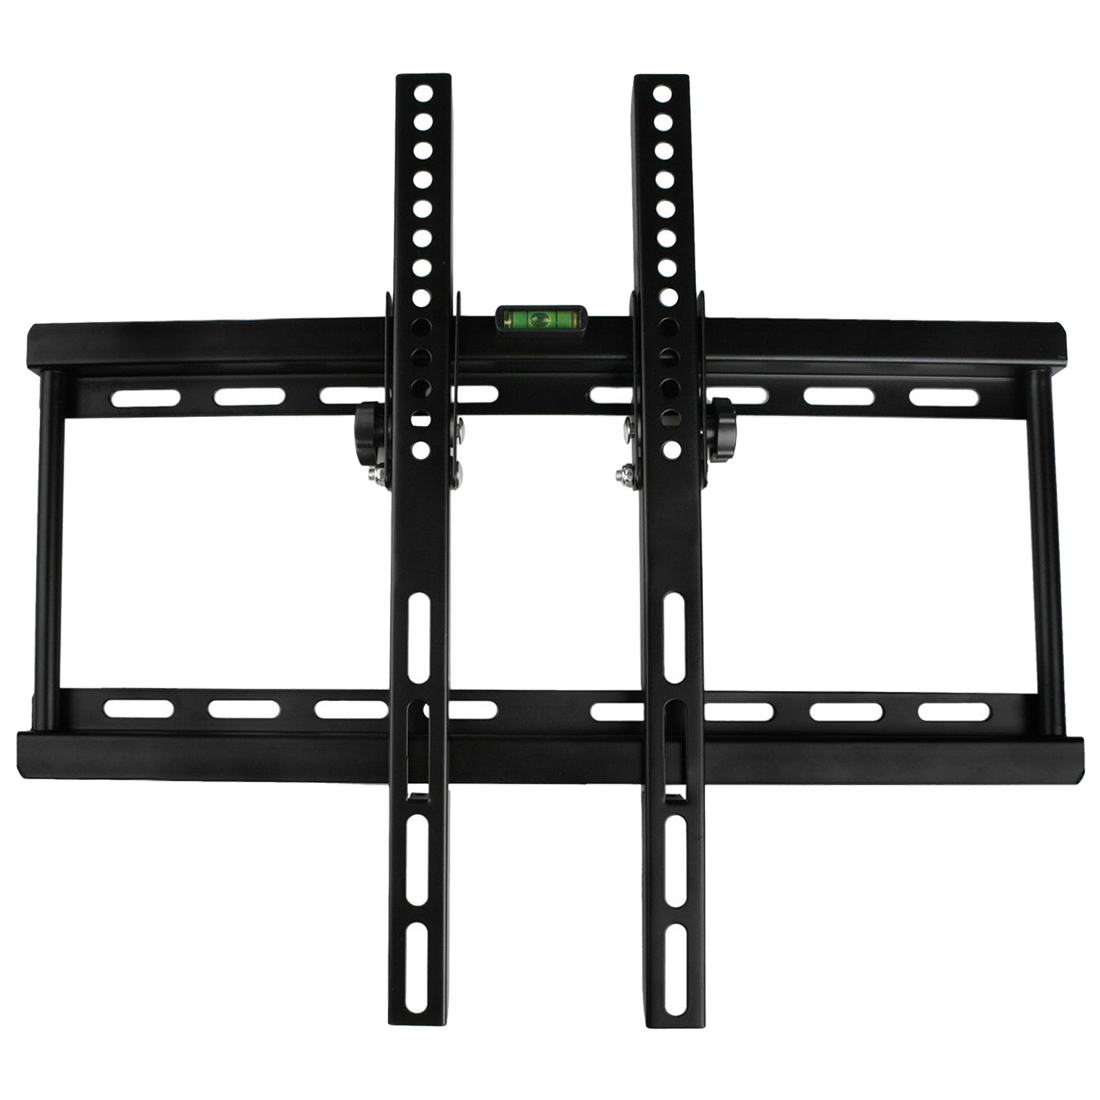 Bathroom Shelves Cooperative Ksol Flat Slim Tv Wall Mount Bracket 23 28 30 32 40 42 48 50 55 Inch Led Lcd Plasma Beneficial To Essential Medulla